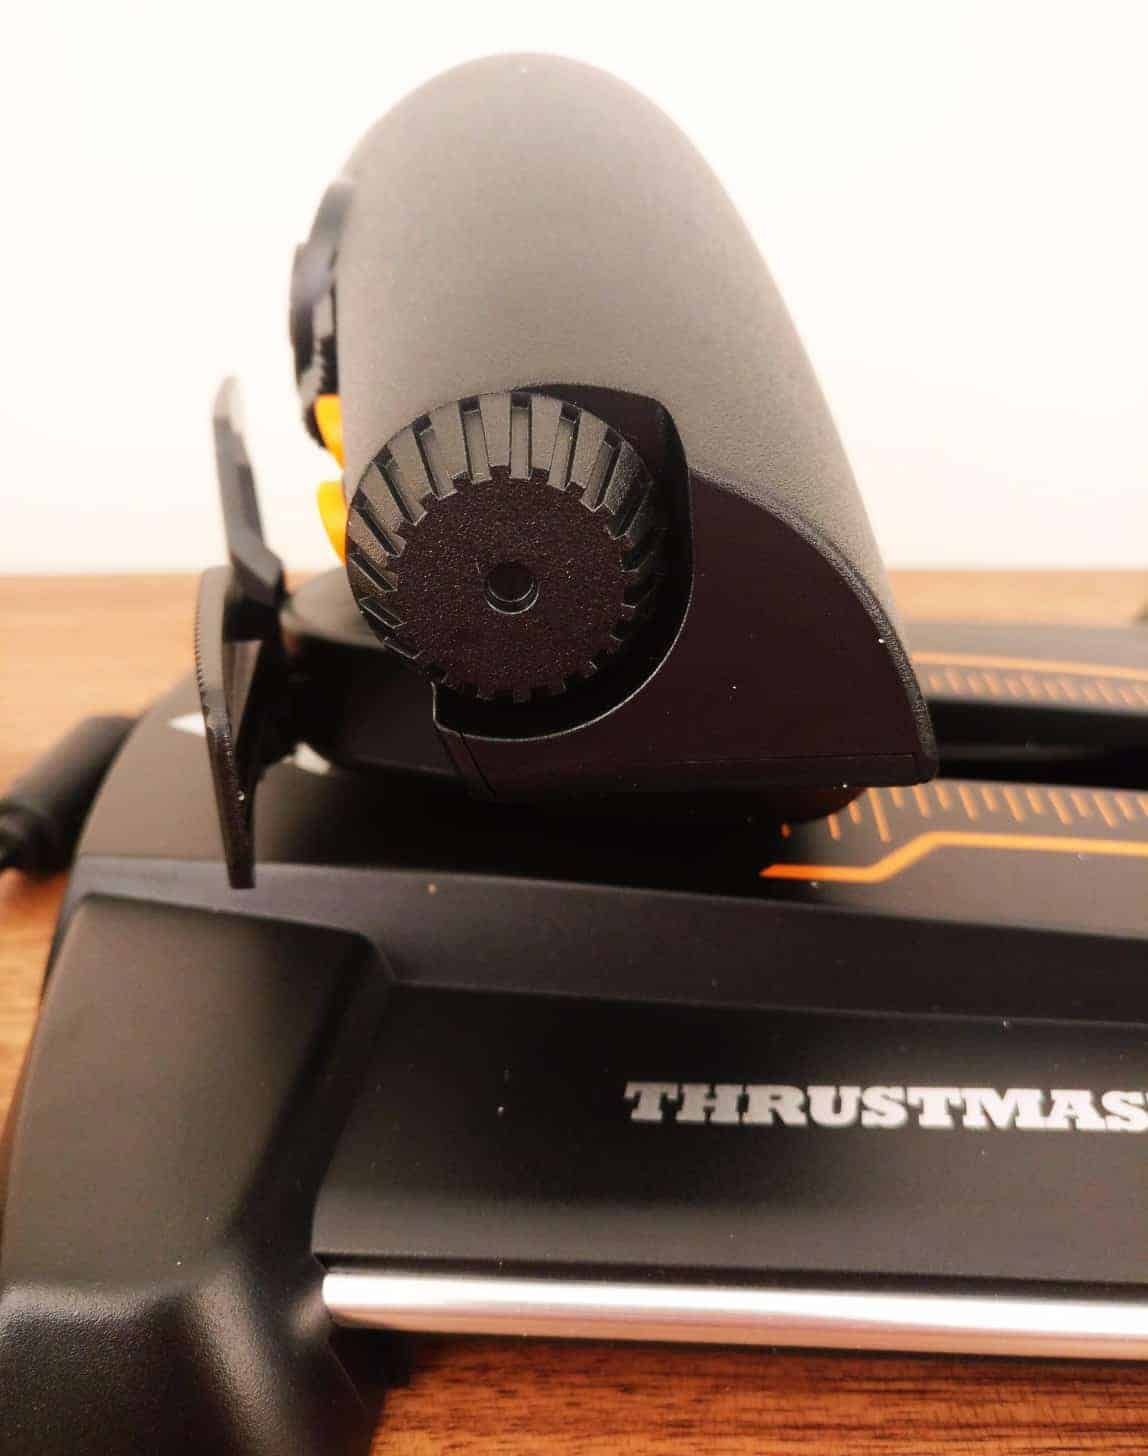 Thrustmaster-Flightstick-Photos15 Thrustmaster T.16000M FCS Hotas Joystick Review